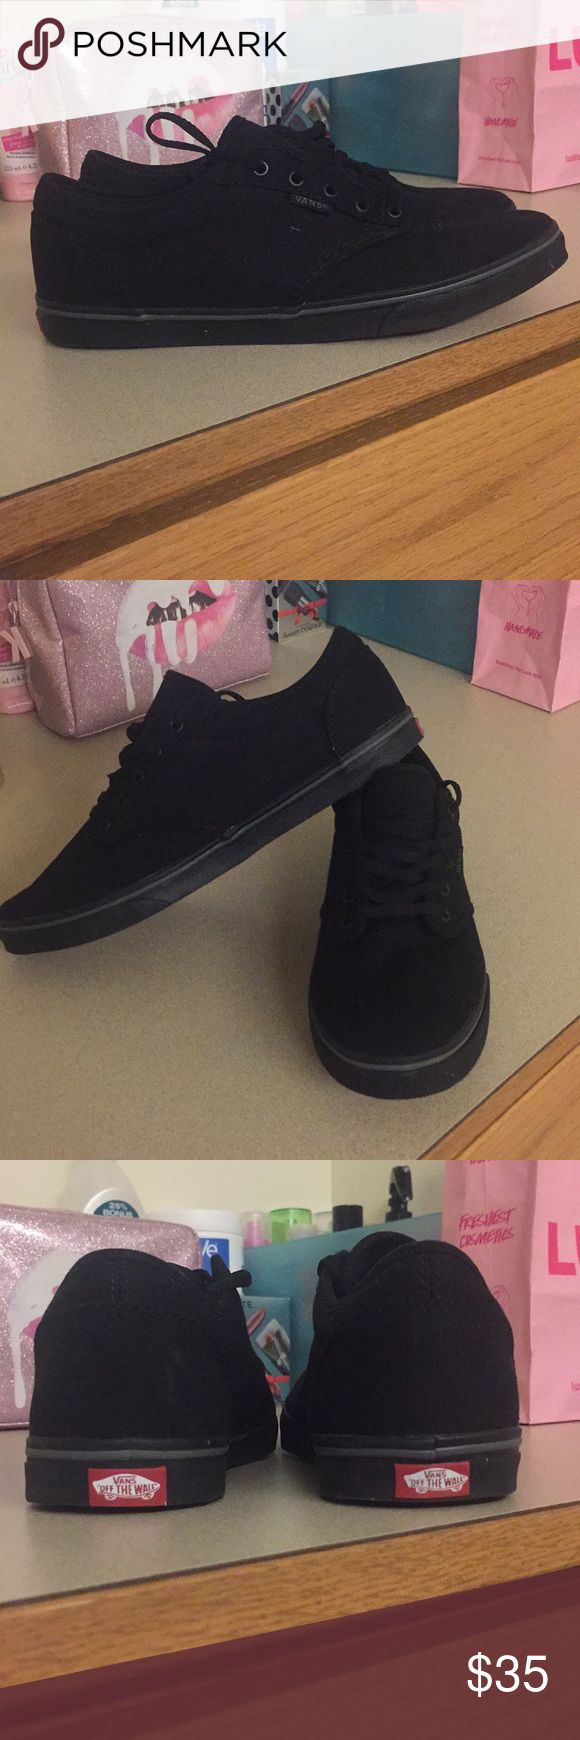 Vans Atwood low Skate shoe Brand new Women's Black/Black Vans Atwood Low Skate shoe (Size 8). NWOT Never used but do not have its box/packaging anymore. Vans Shoes Sneakers